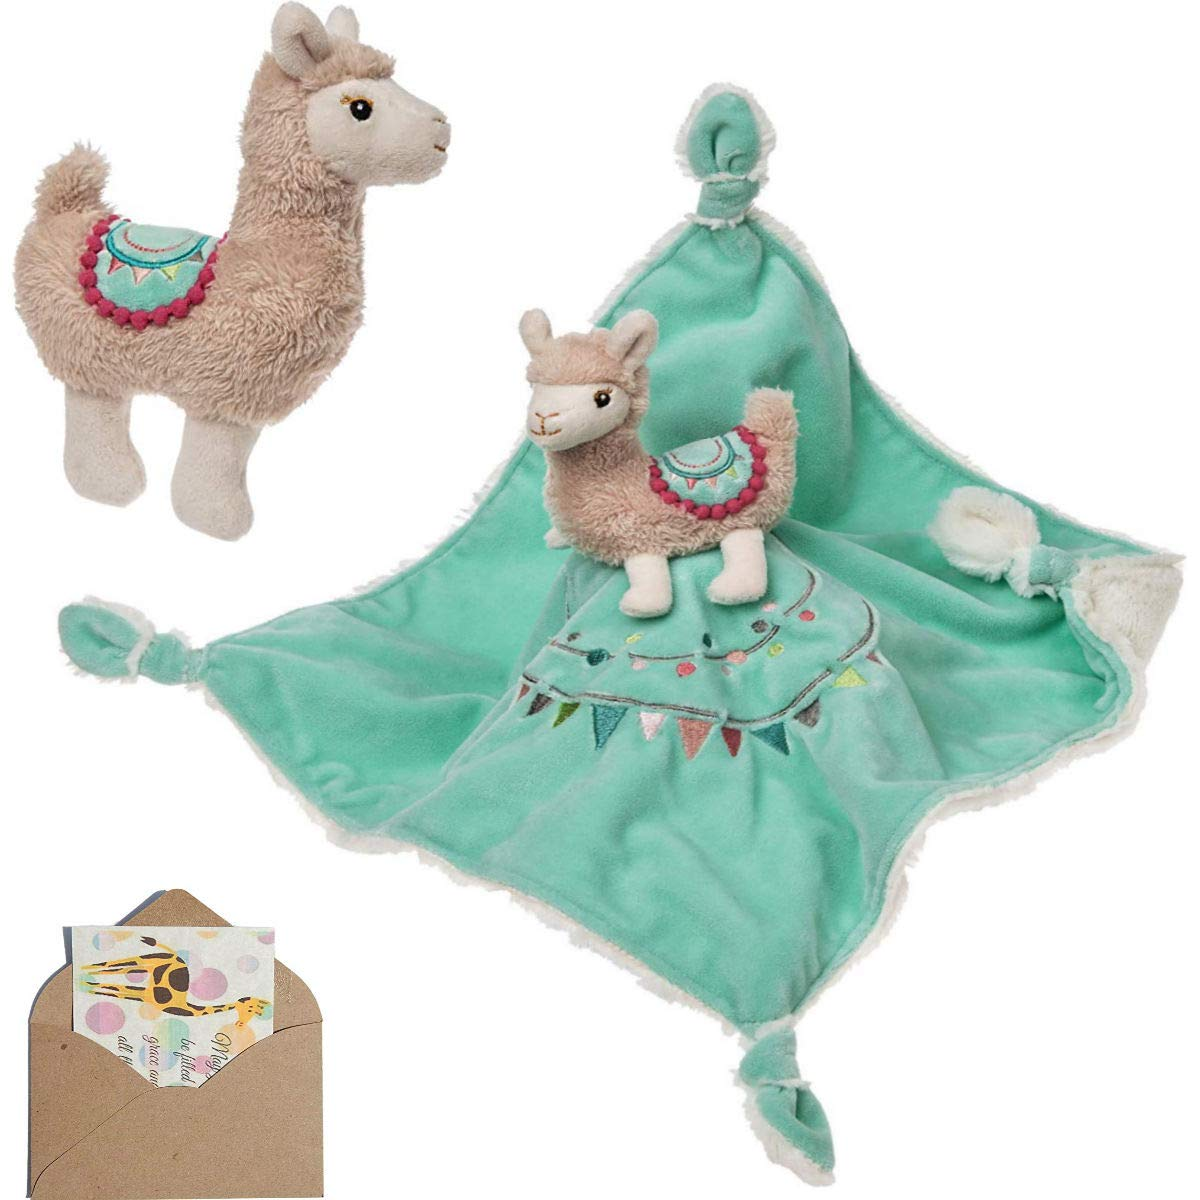 Llama Baby Toy Bundle by Mary Meyer with Rattle and Blanket Lovey and Mini Gift Card